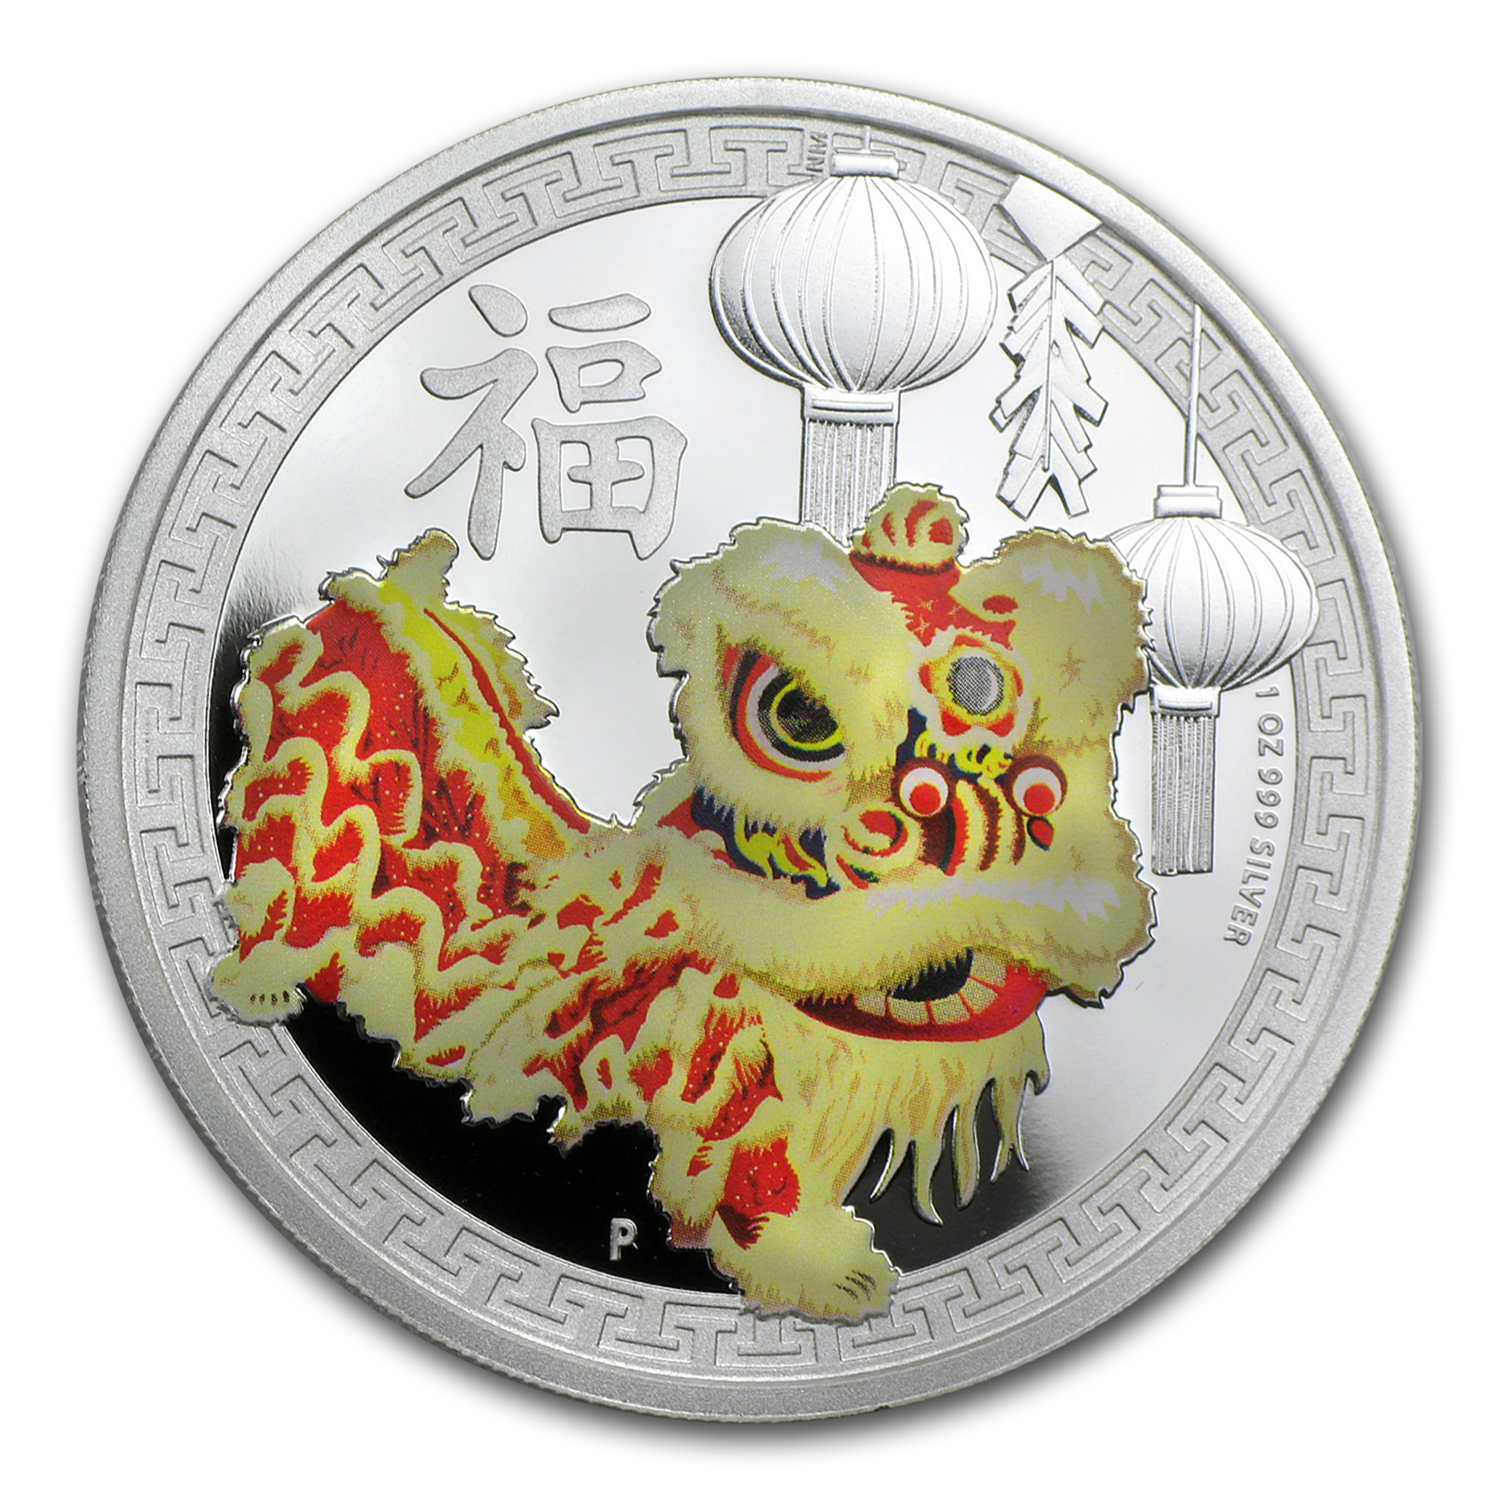 2015 Australia 1 oz Silver Lion Dance Proof